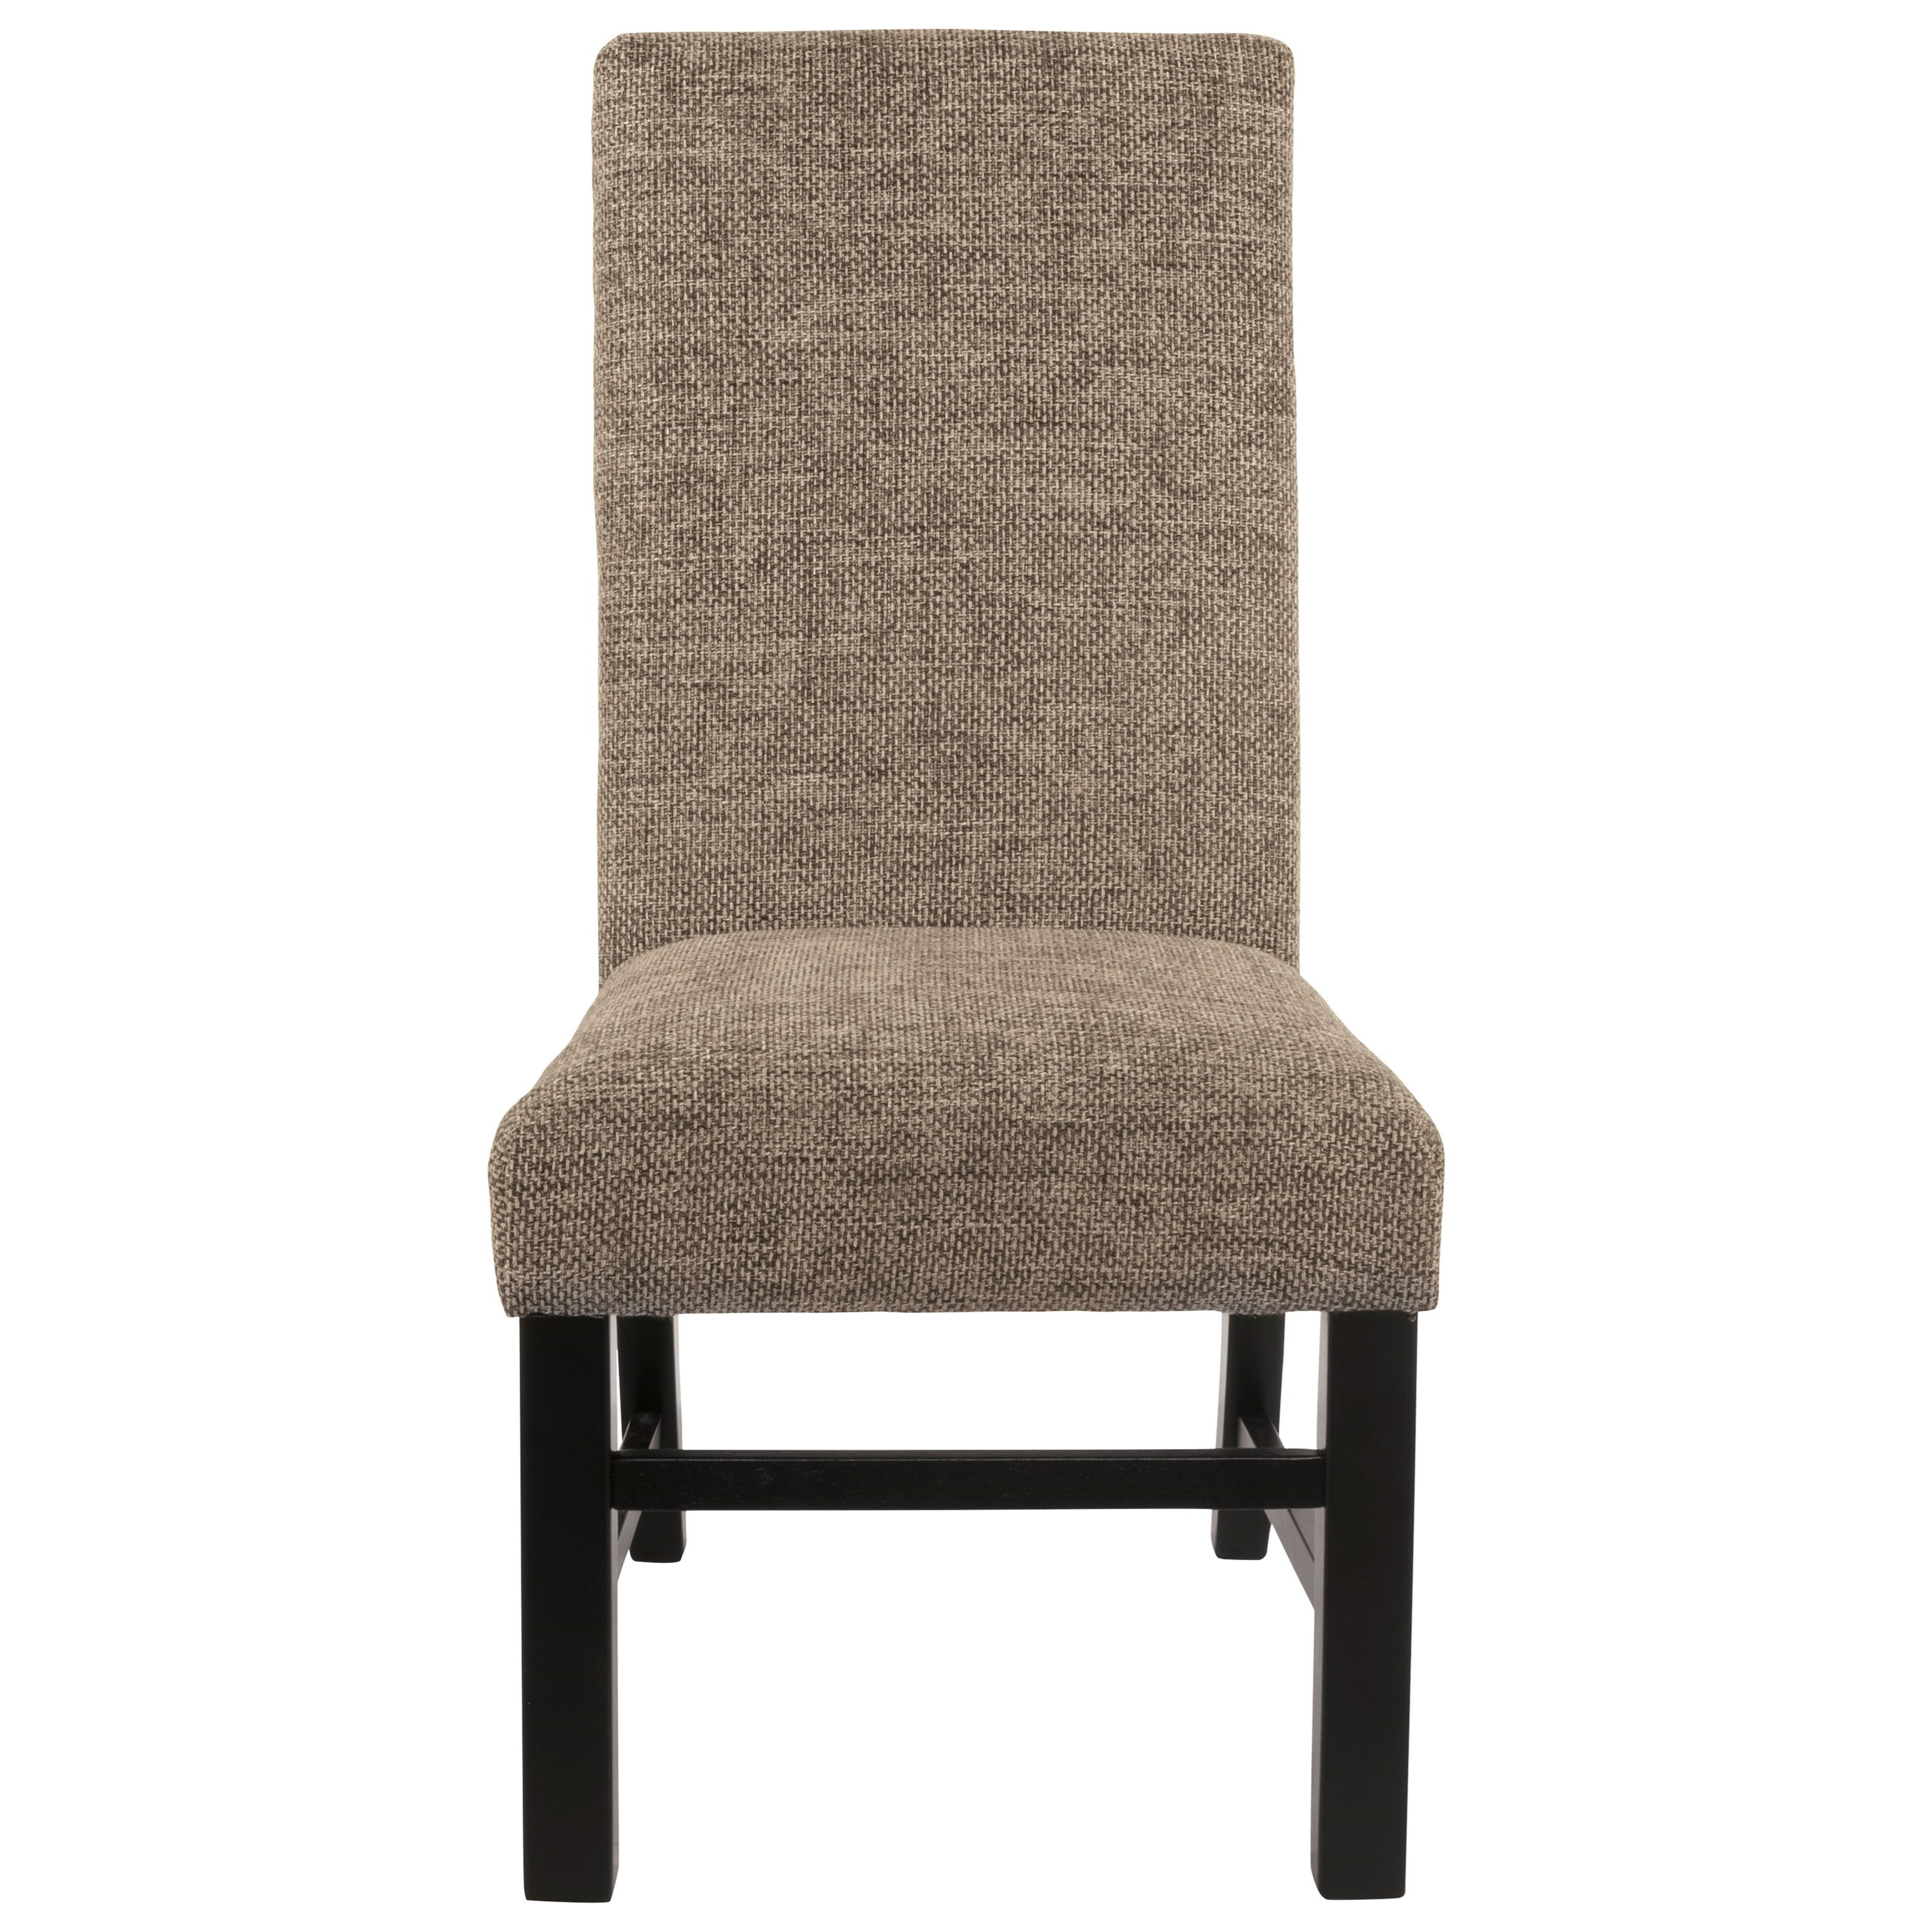 Sommerford Dining Upholstered Side Chair by Ashley (Signature Design) at Johnny Janosik